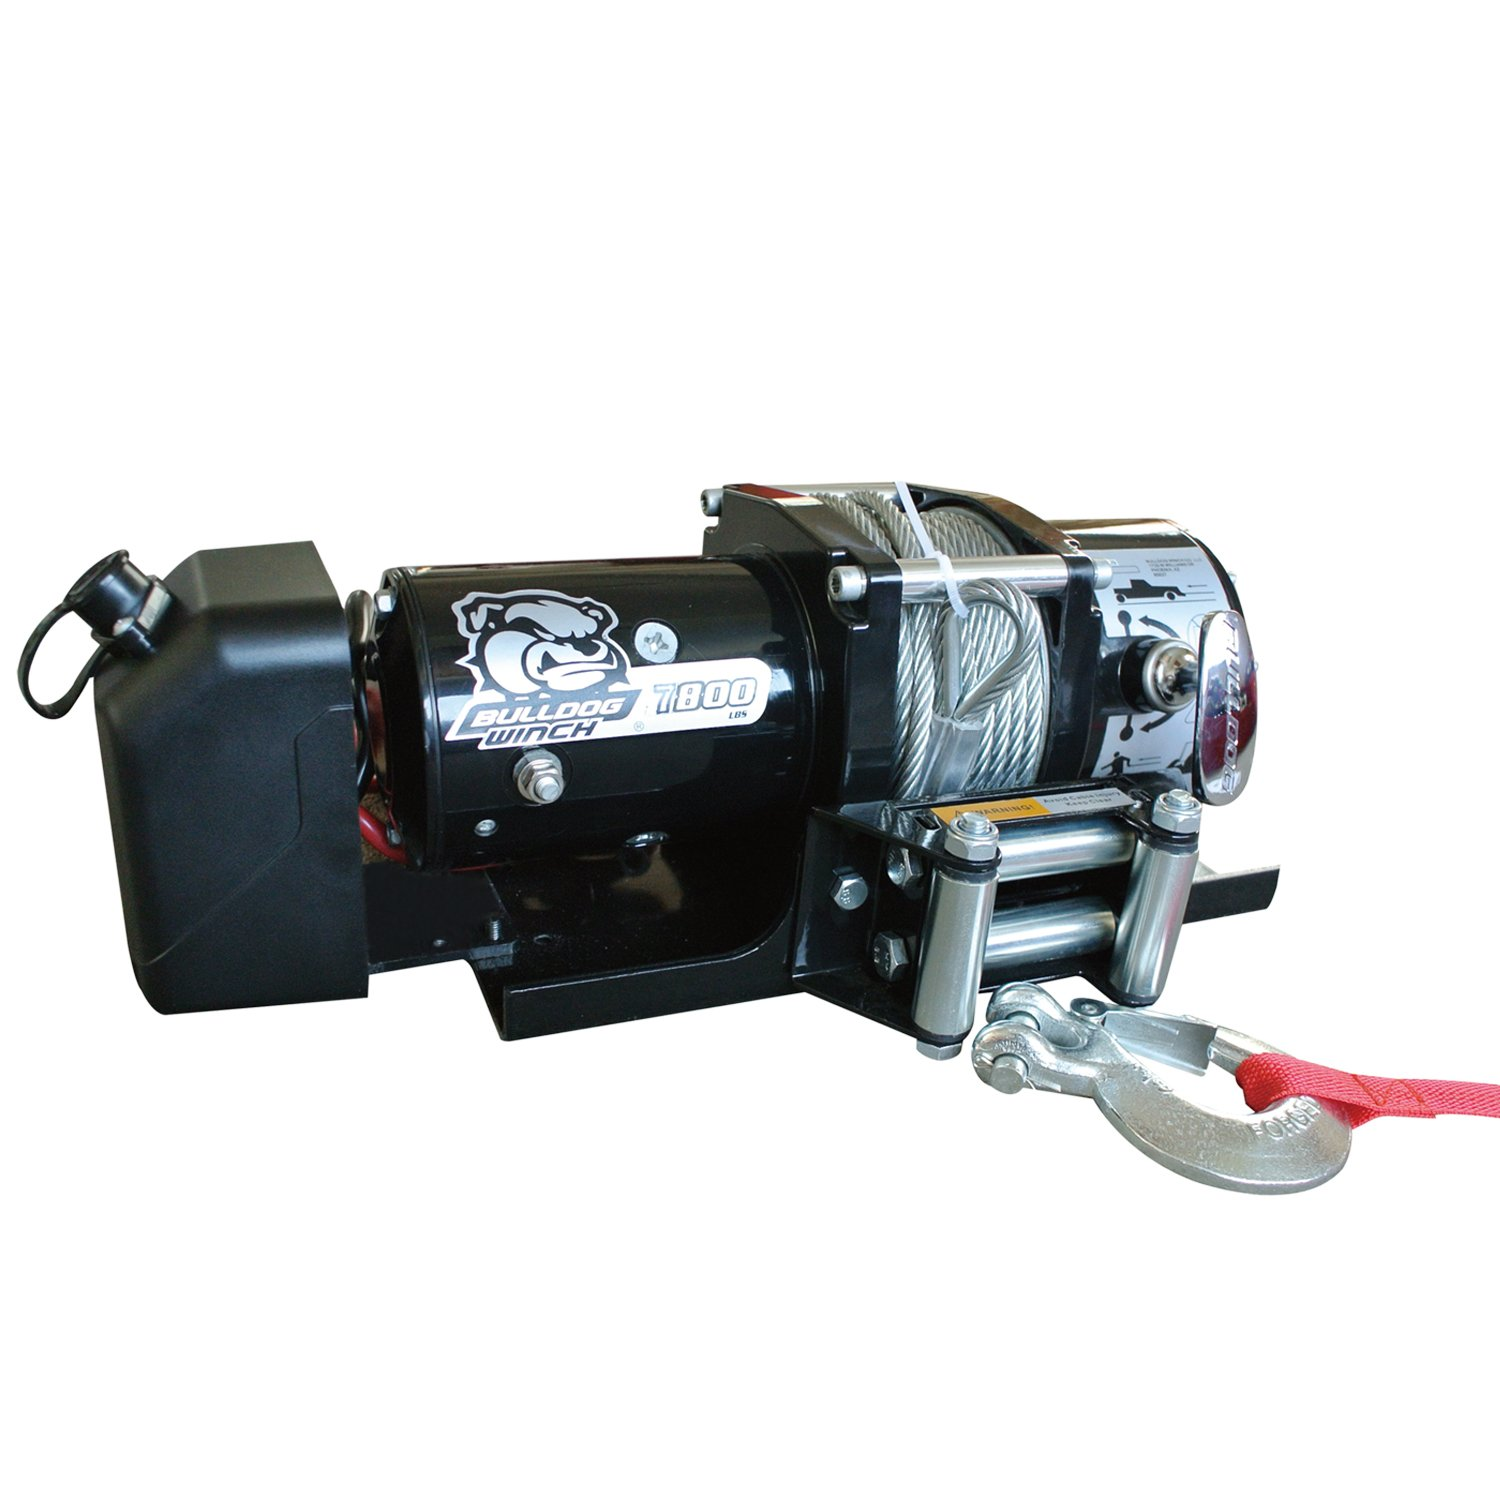 BULLDOG Winch 10031 Winch (7800lb Trailer with 47.6 ft. Wire Rope, Roller Fairlead, Mounting Plate, Low Profile)